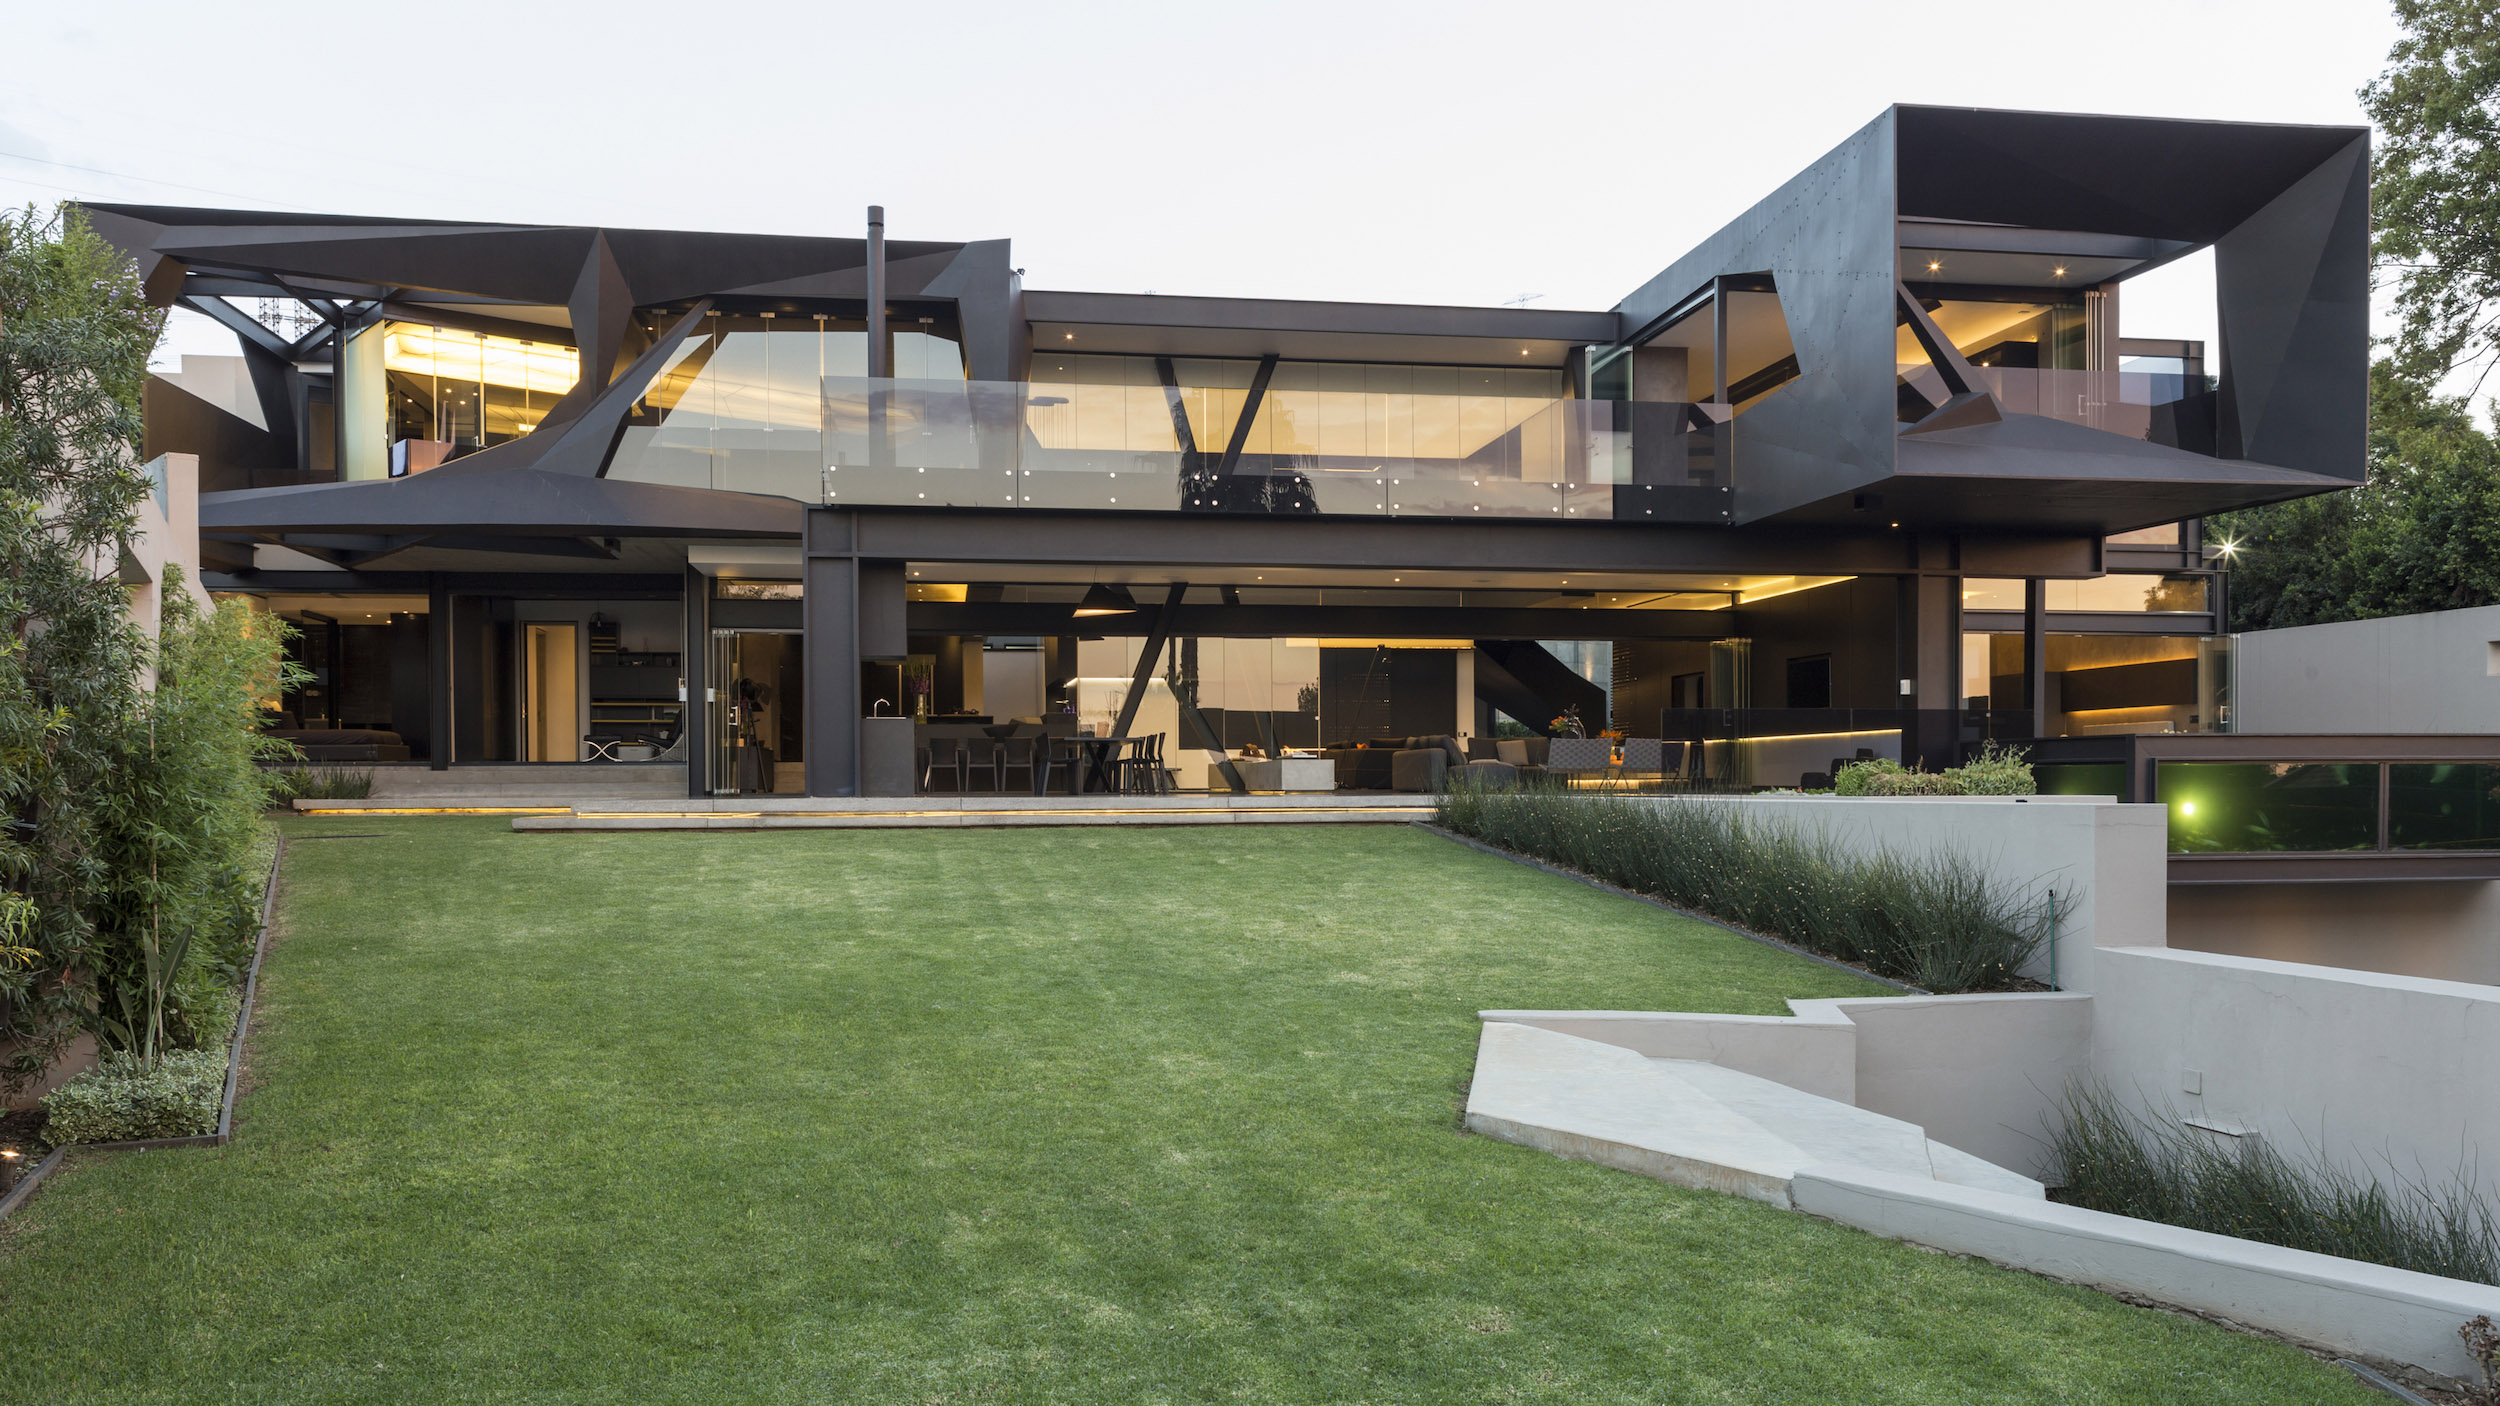 Kloof Road Masterpiece House in Johannesburg by Nico van der Meulen Architects-08